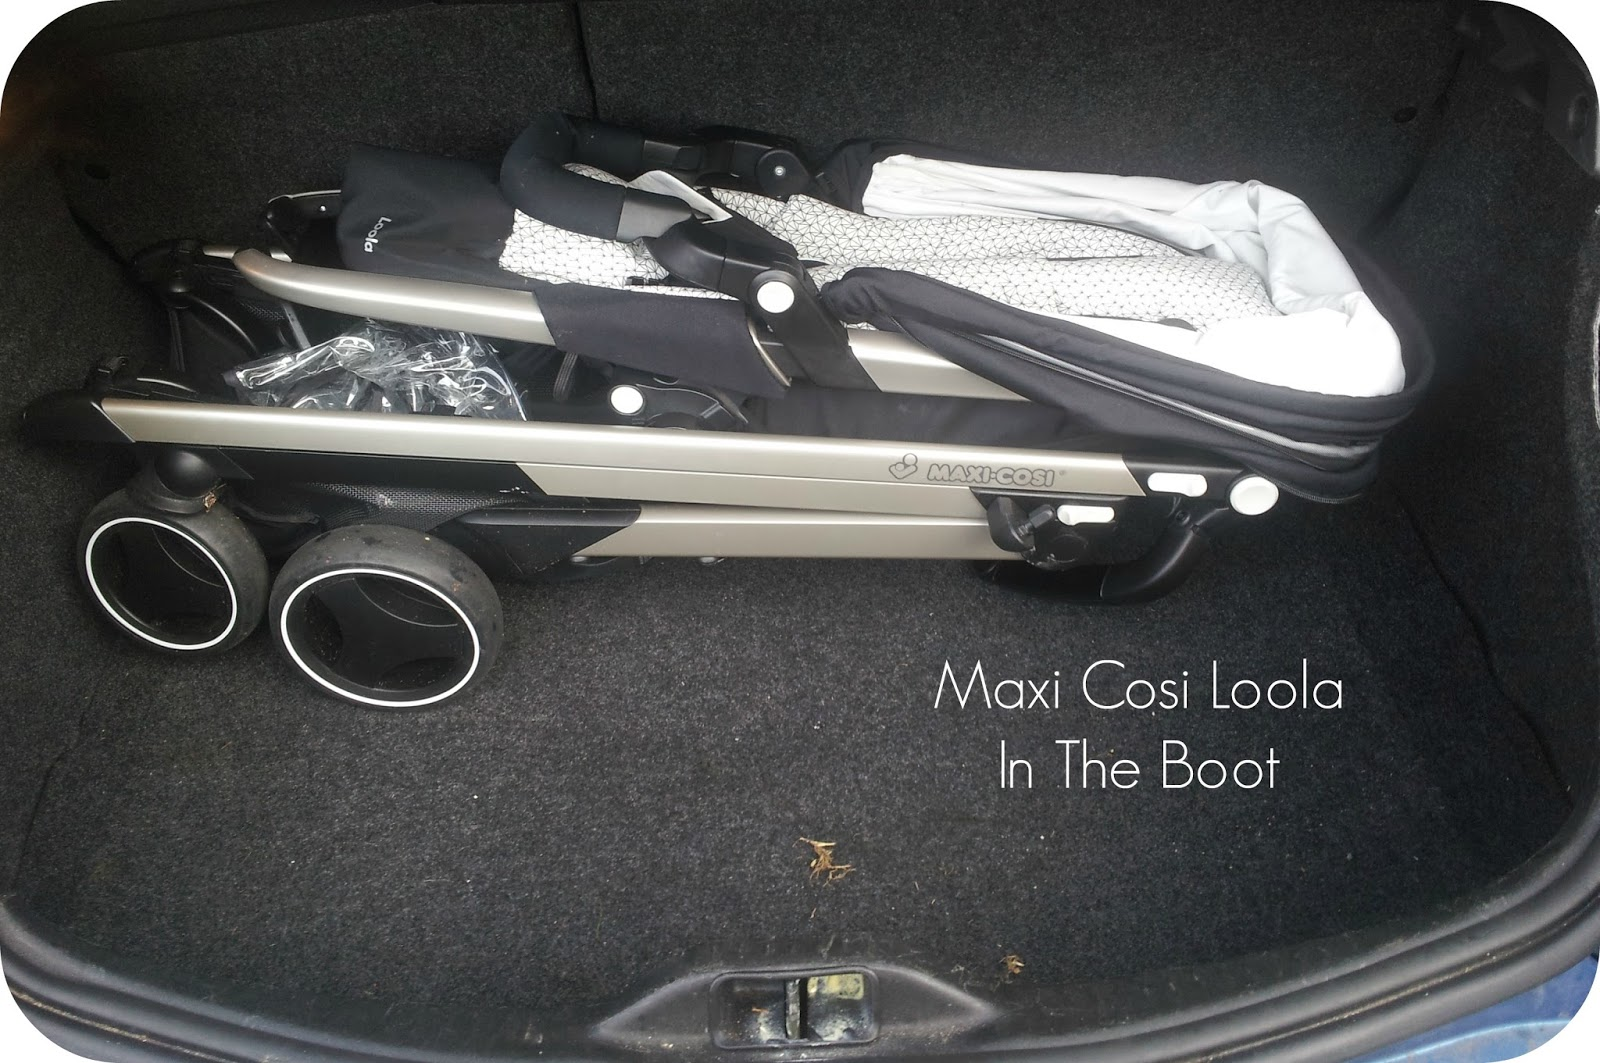 Maxi Cosi Loola In The Boot